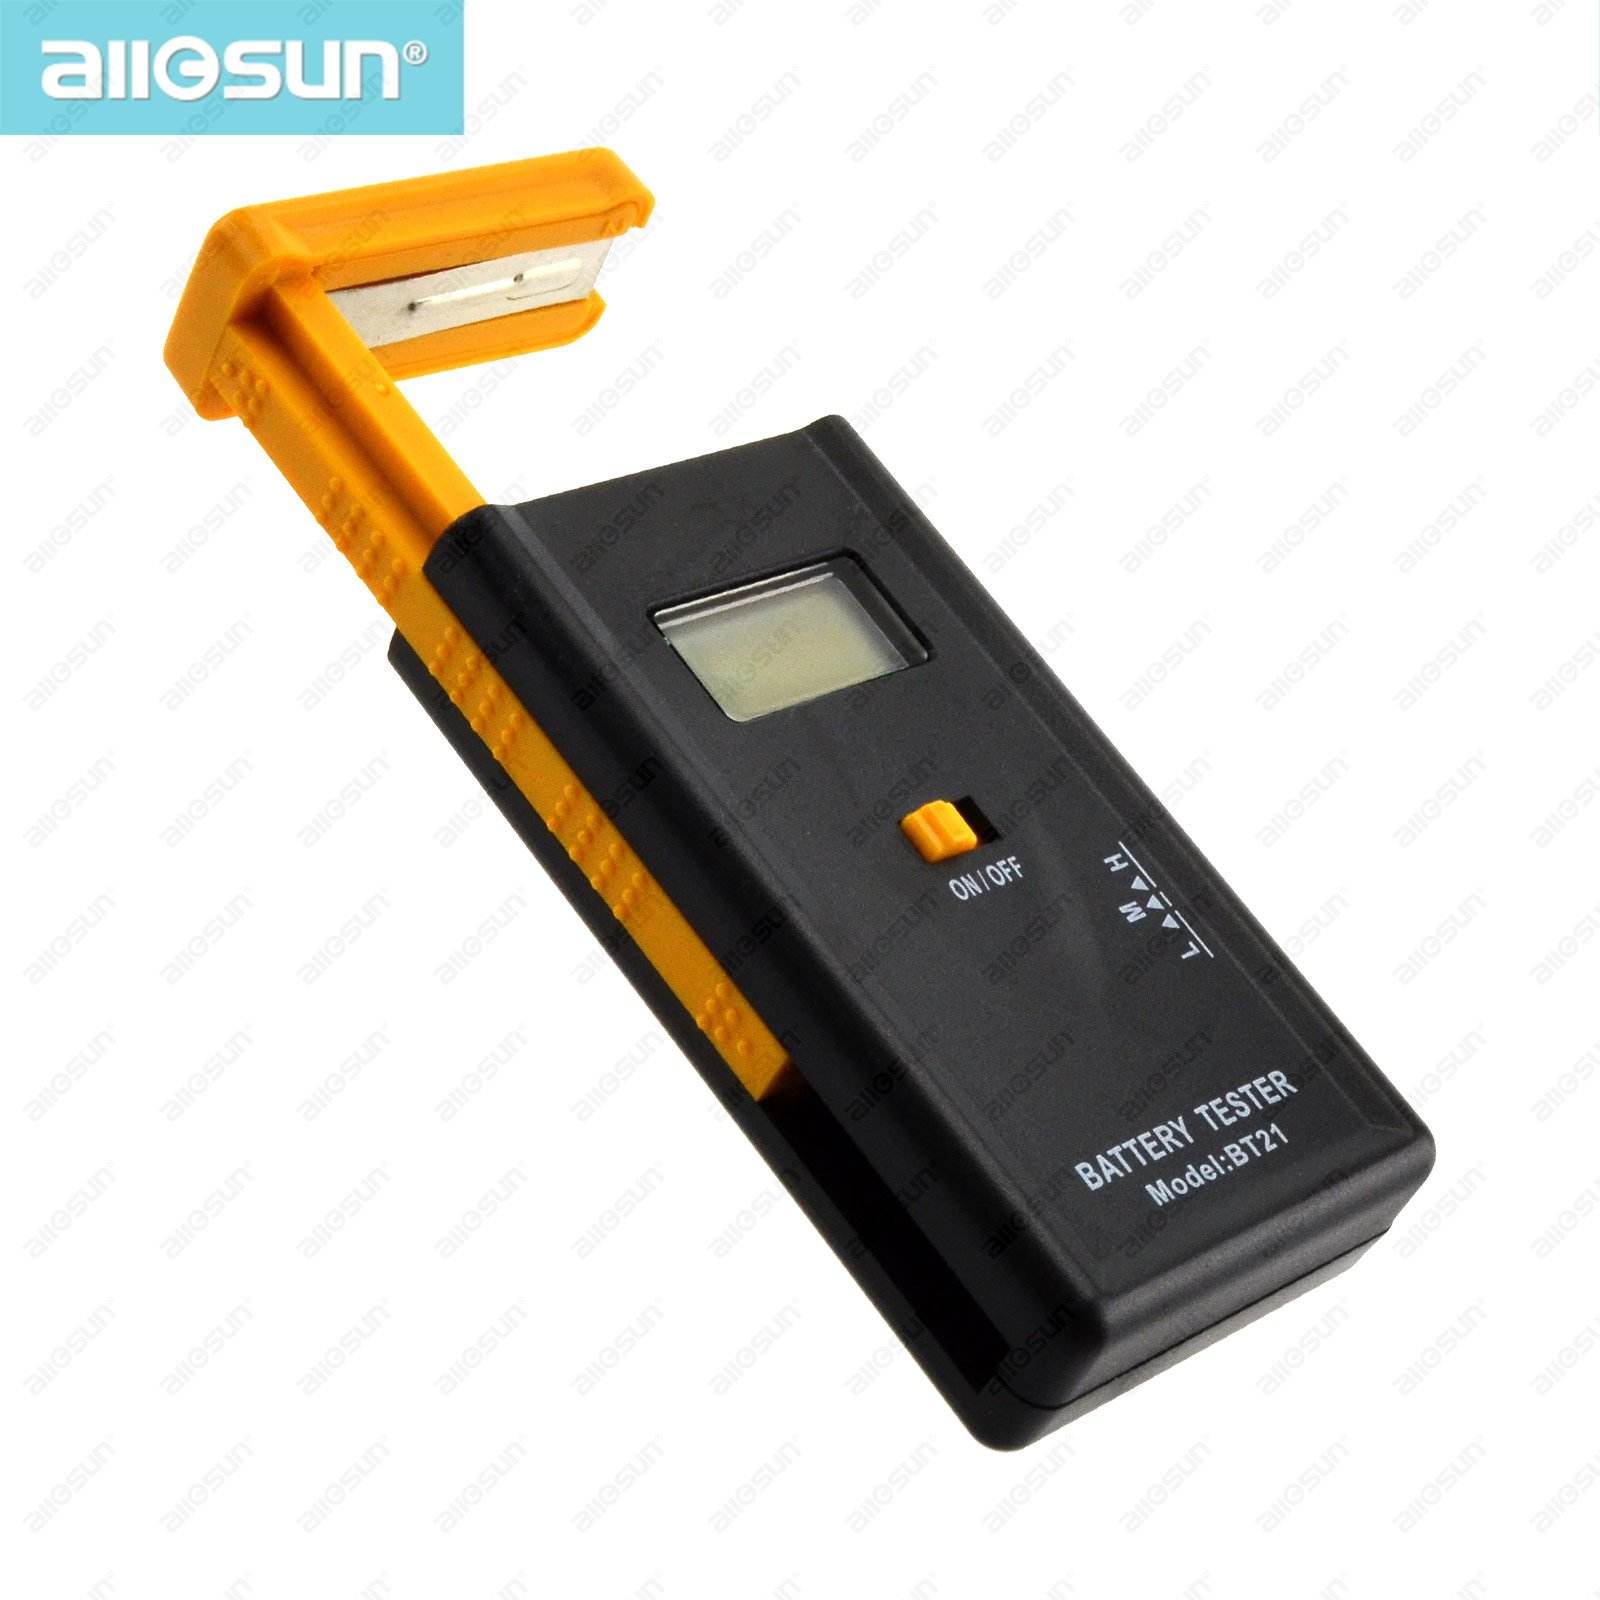 Household Battery Tester : All sun bt digital battery tester lcd display about